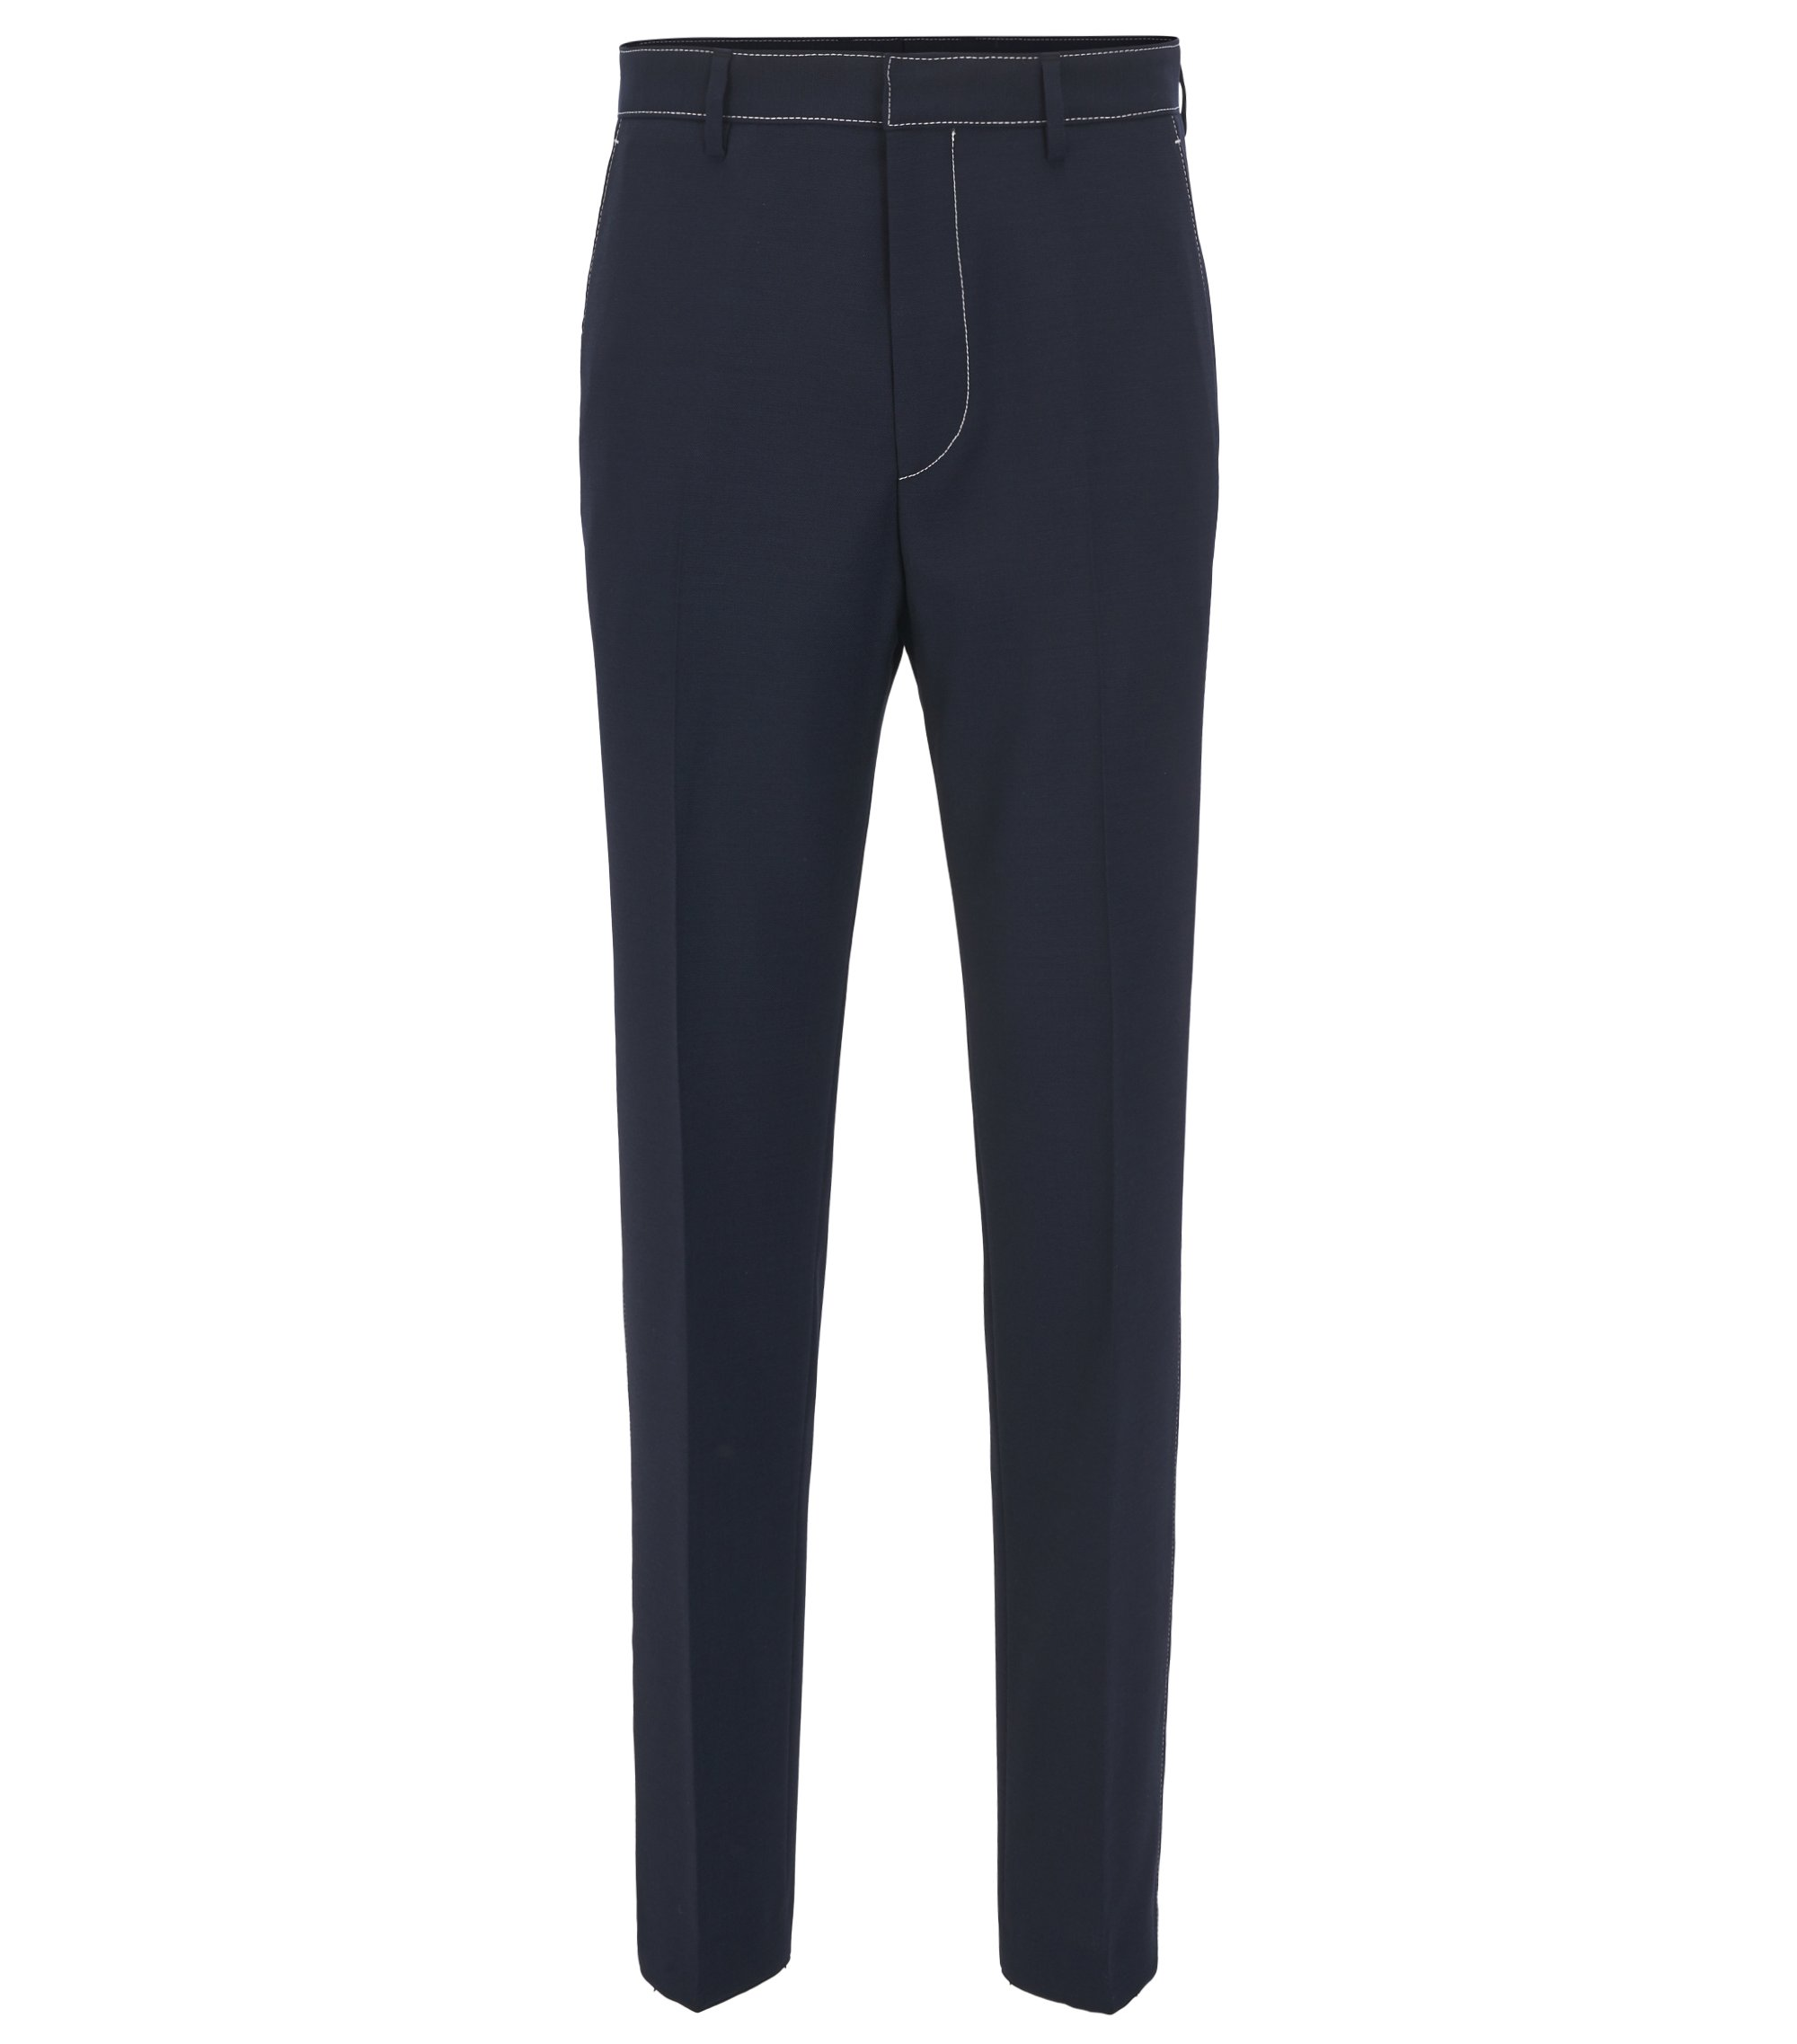 Pantaloni slim fit in lana vergine con impunture di colore a contrasto, Blu scuro